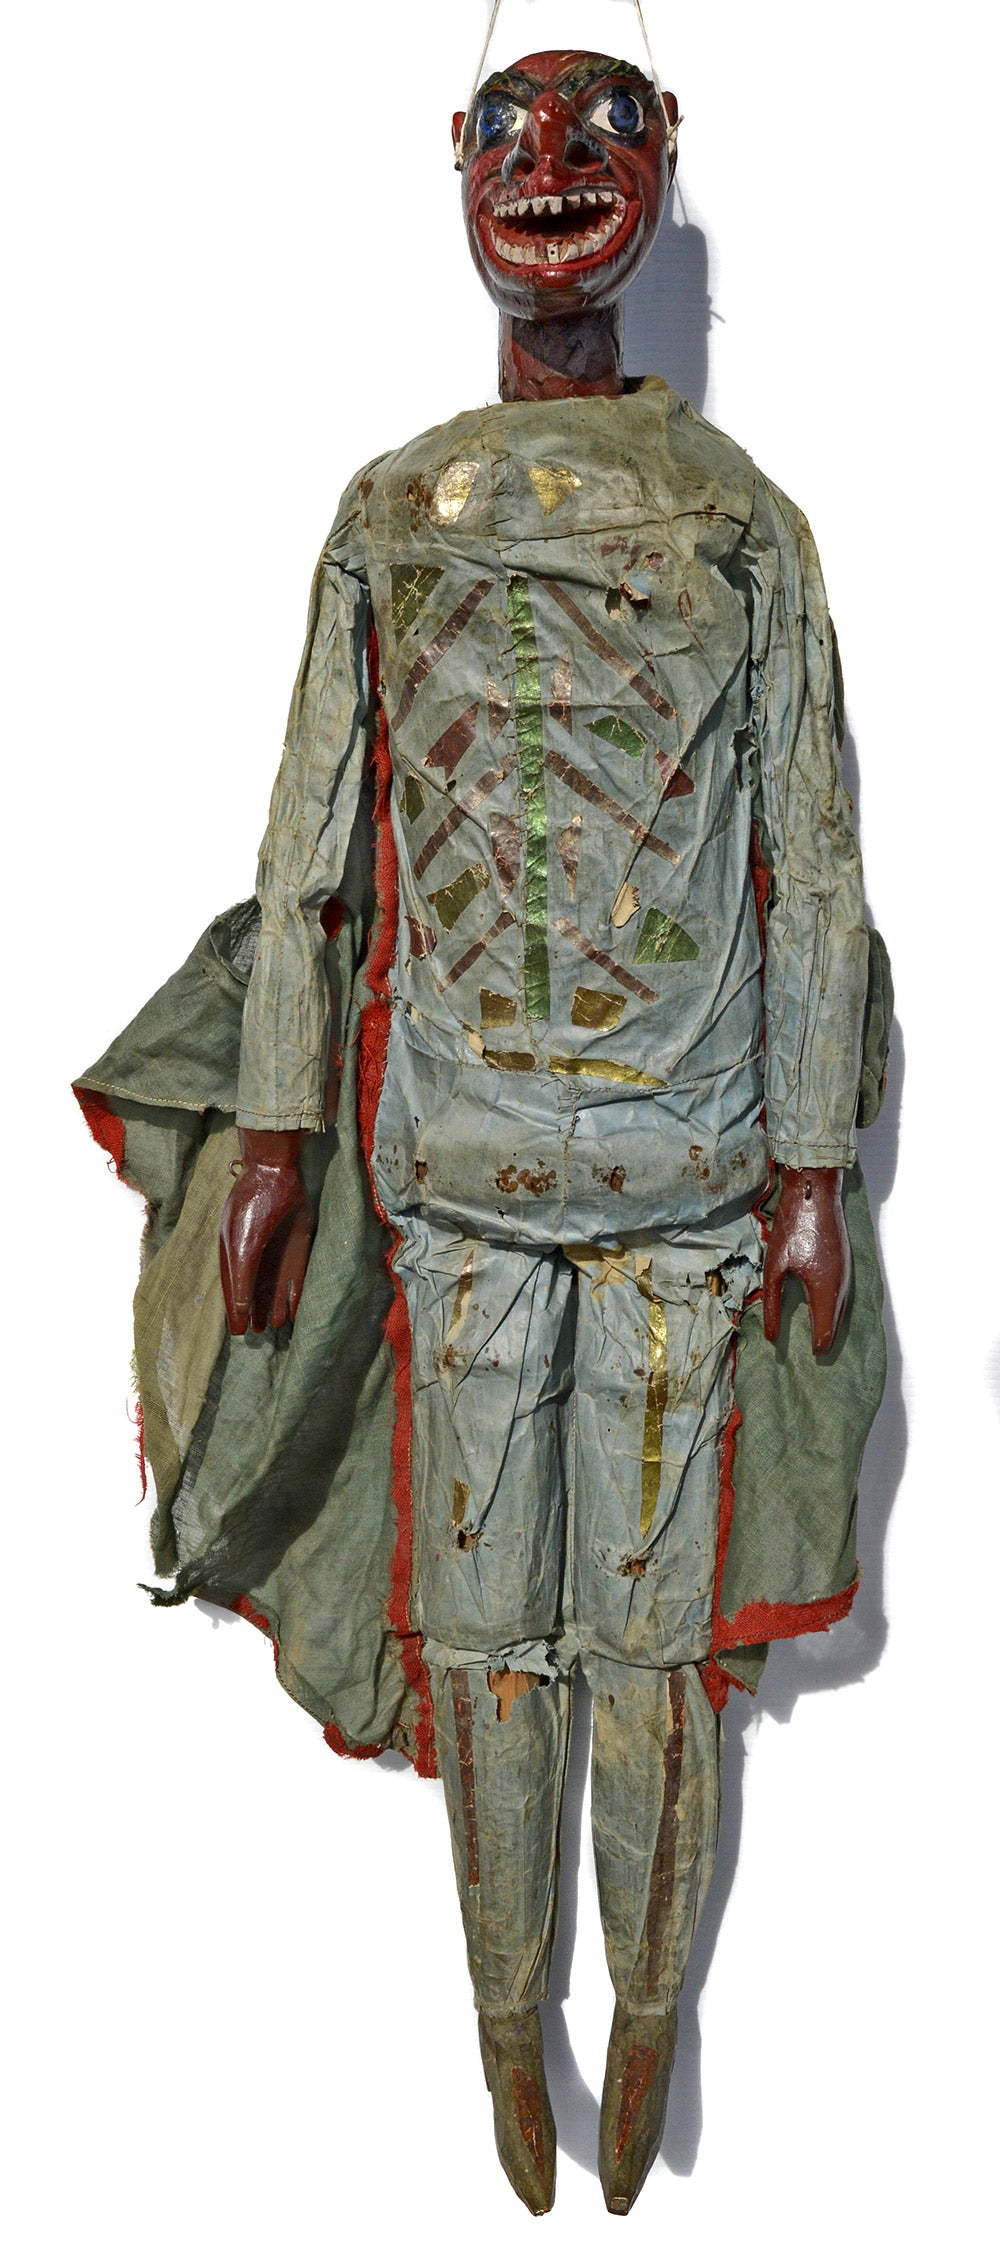 Devil Marionette 3  Large wooden carved 19th century English